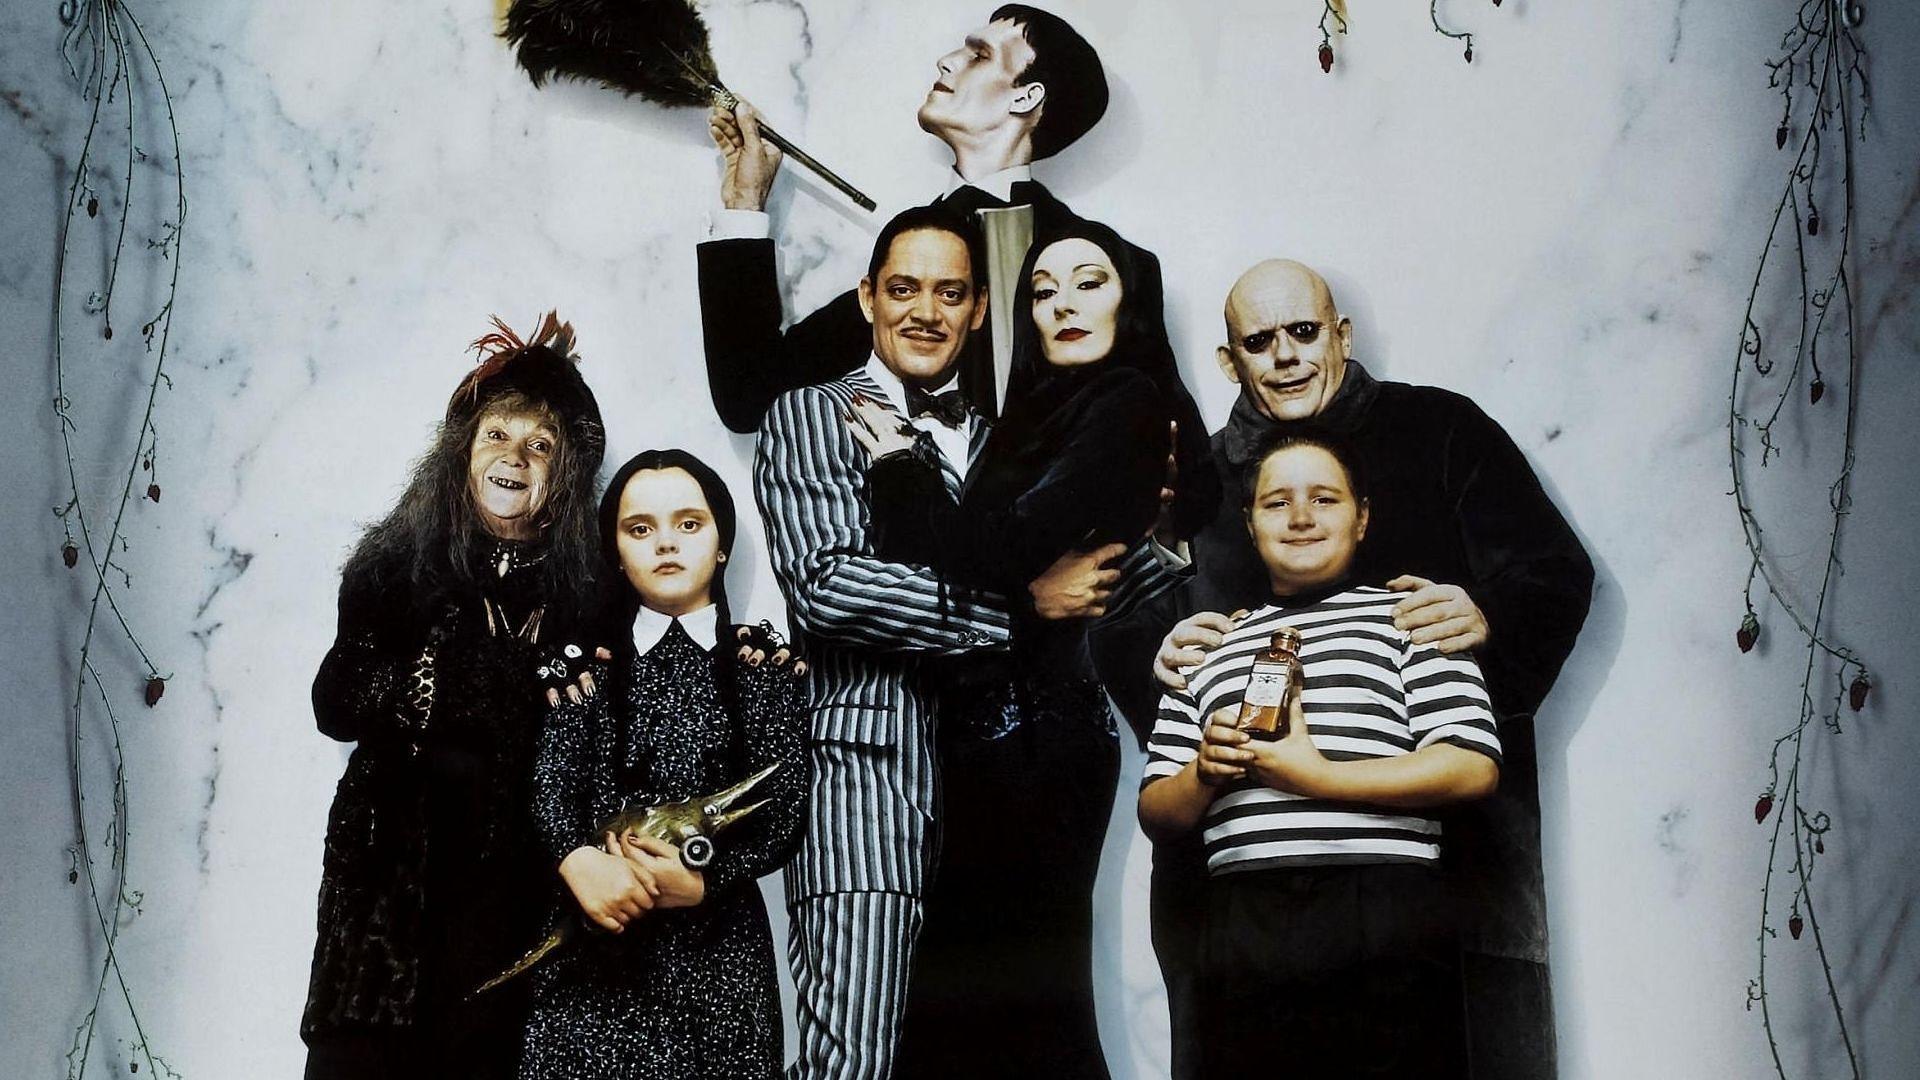 Familia Addams Wallpapers - Wallpaper Cave